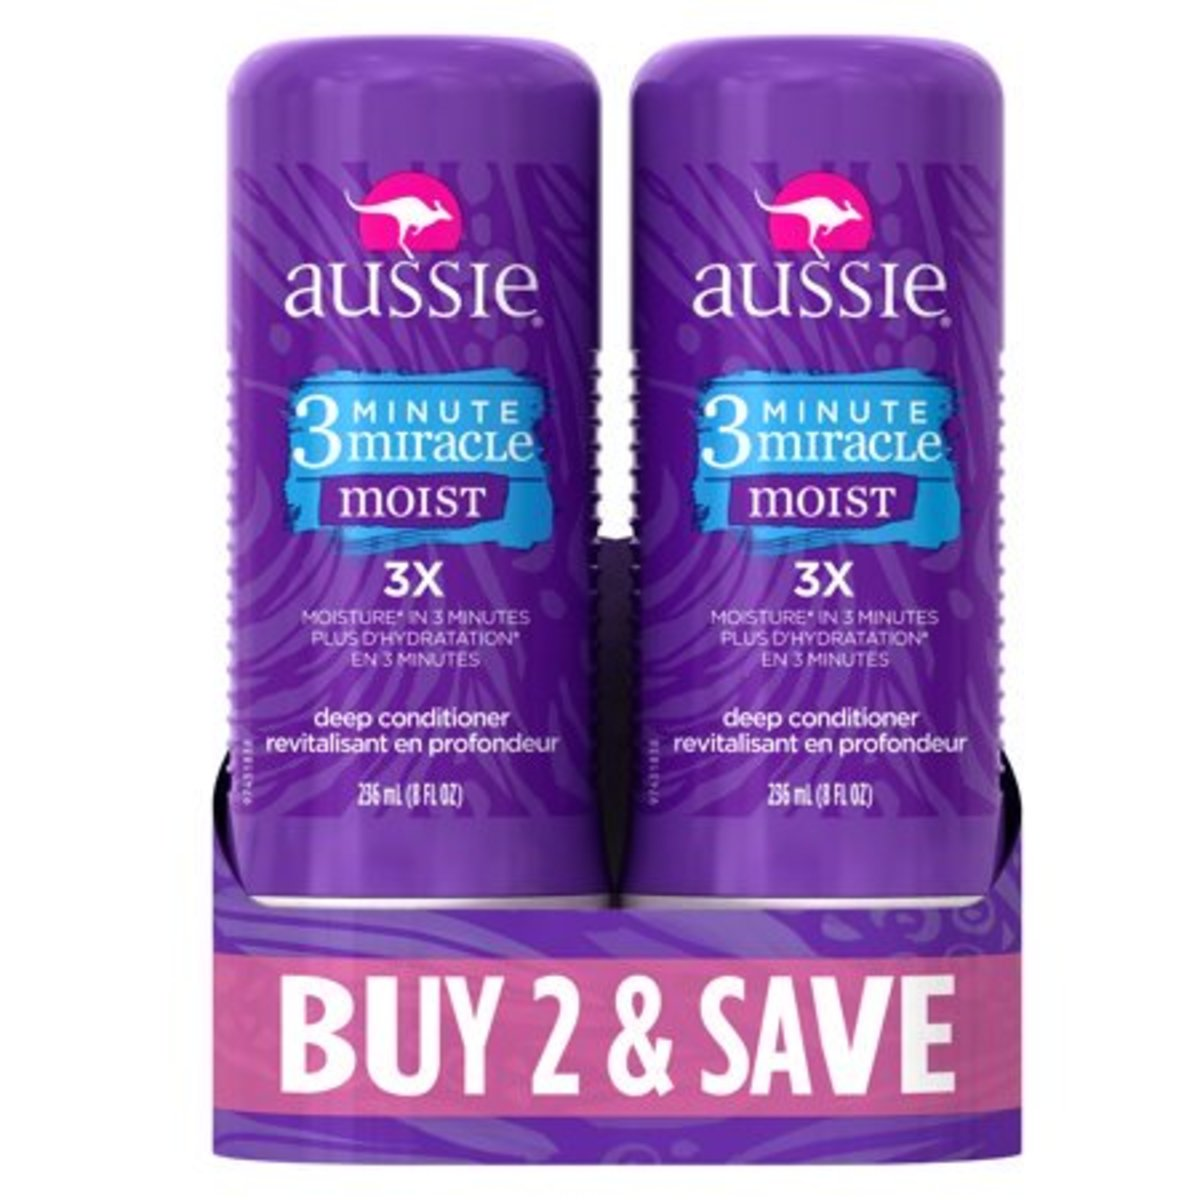 Aussie 3 Minute Miracle Conditioner Review